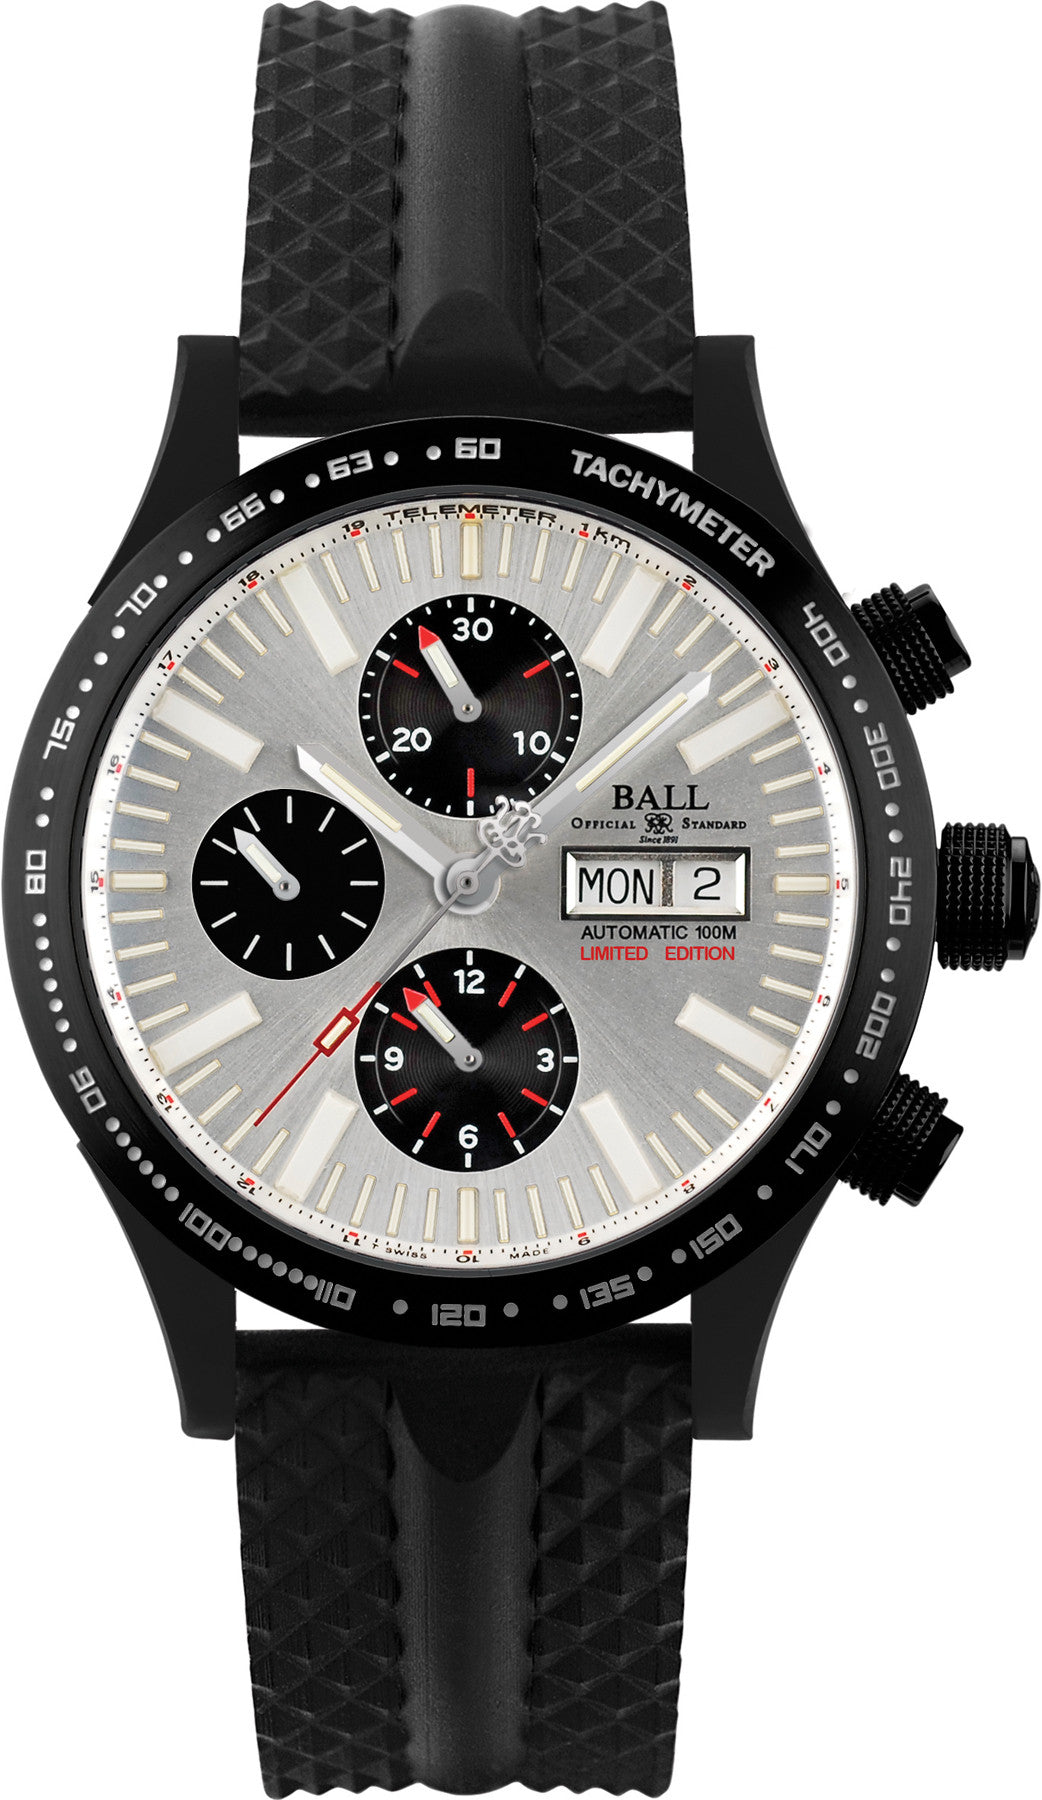 Ball Watch Company Fireman Storm DLC Glow Limited Edition